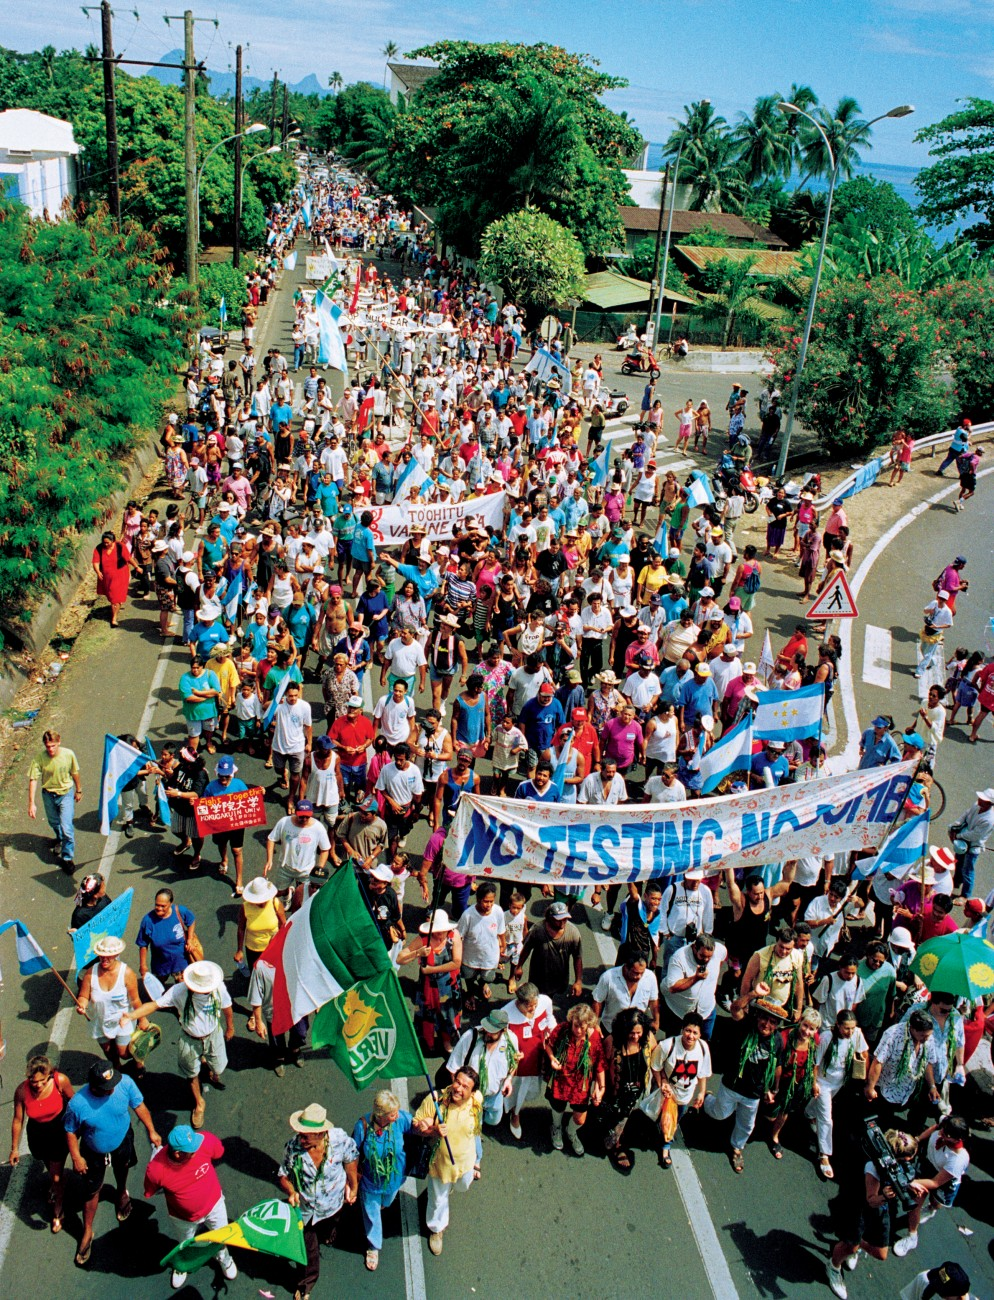 Locals marched around Tahiti for several days protesting the tests. On the last day they were joined by international supporters, including NZ politicians.